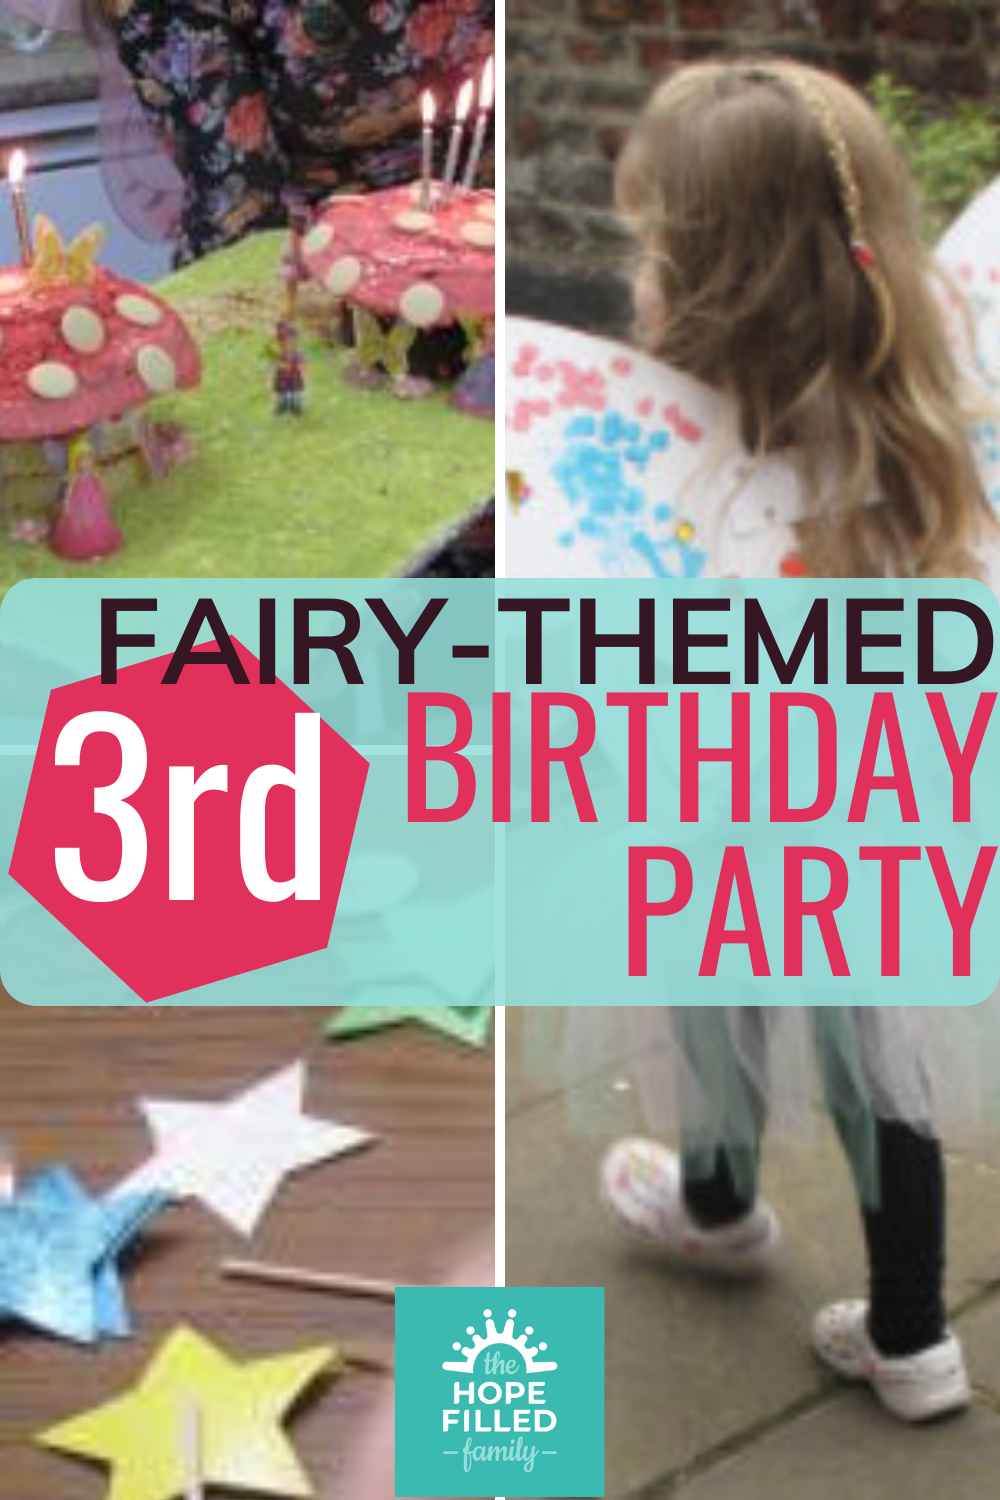 Fairy-themed 3rd birthday party for a 3 year old girl. Crafts, food, decorations, games and activities.